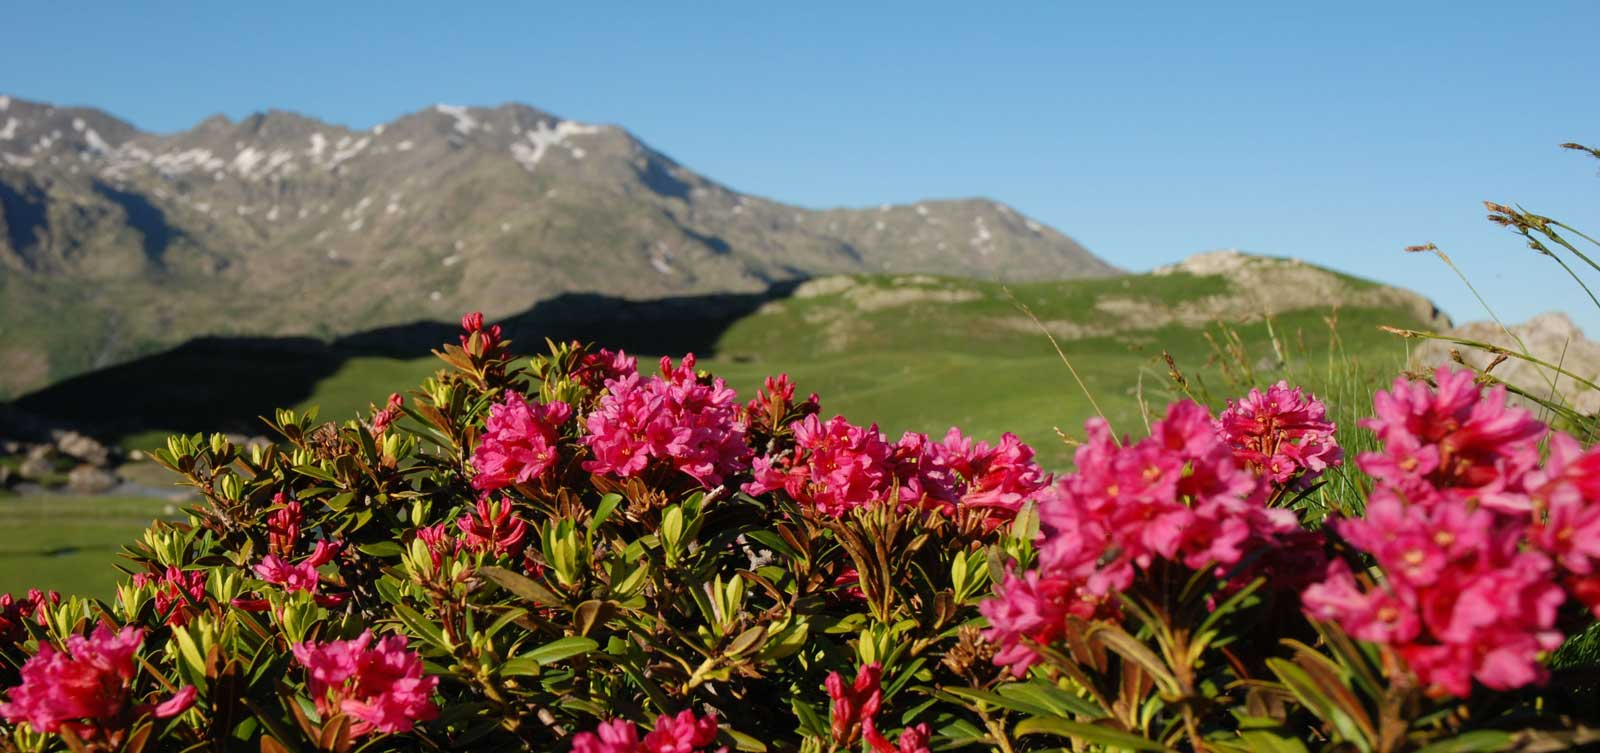 sejour-randonnee-liberte-claree-rhododendrons